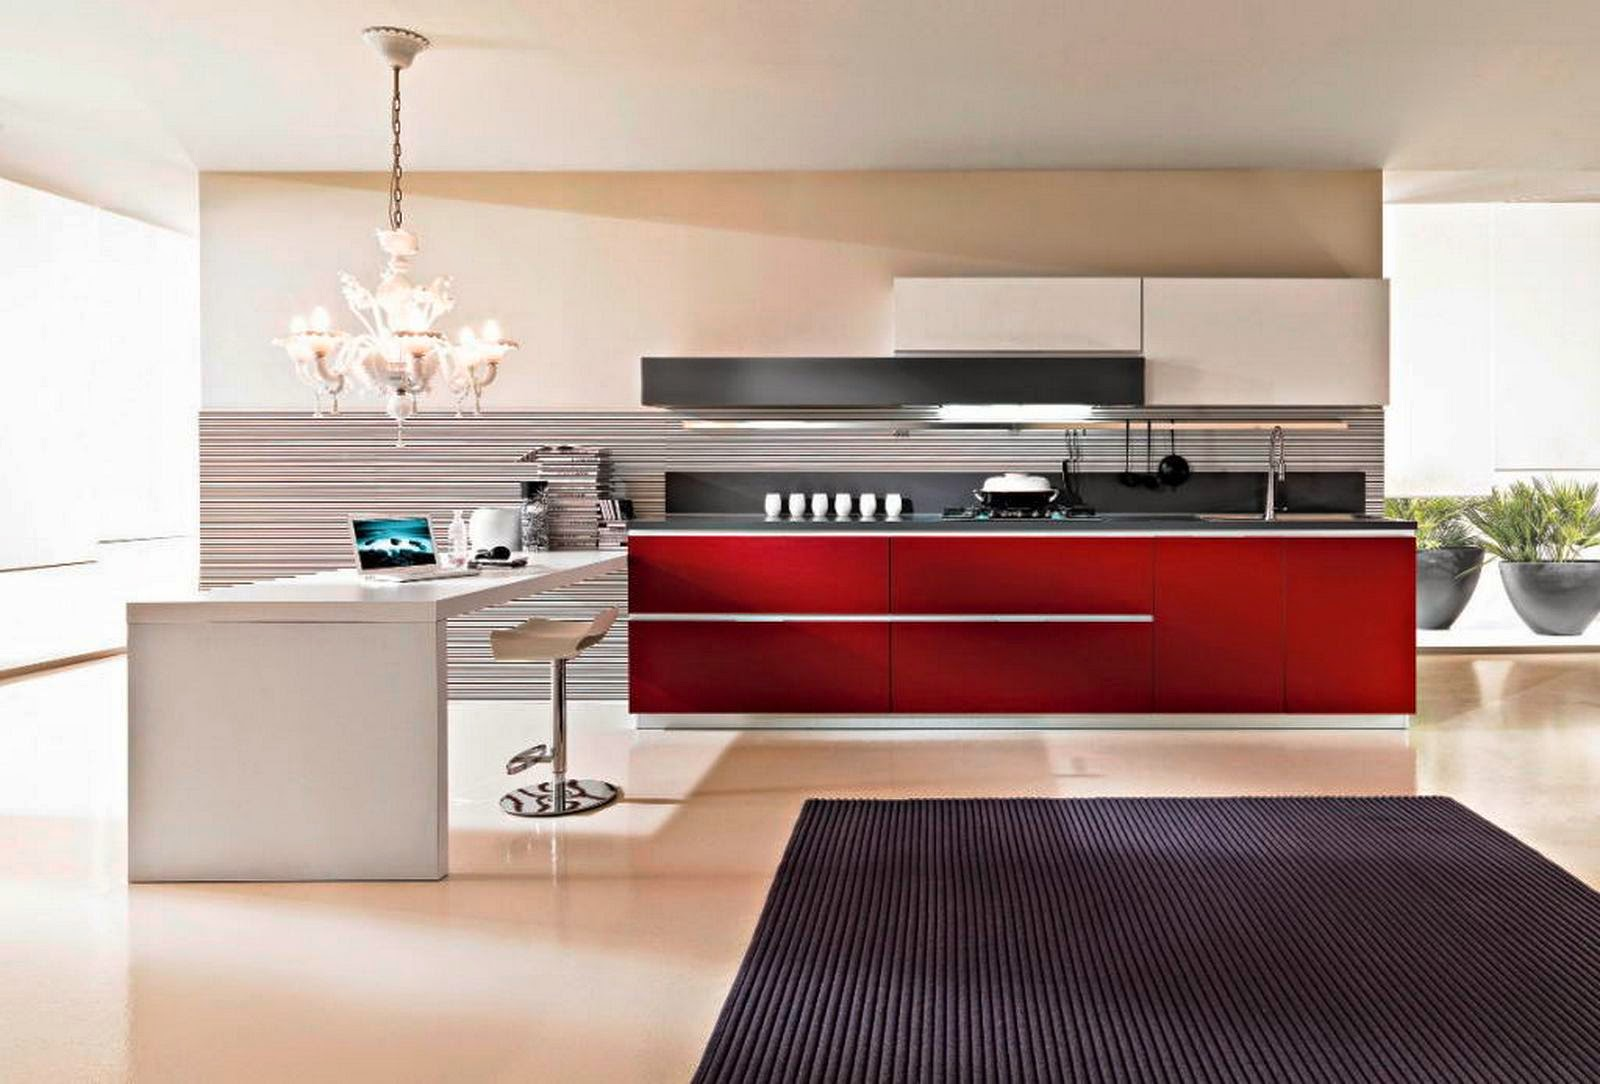 The Best interior design: Home design ideas for kitchens Italy